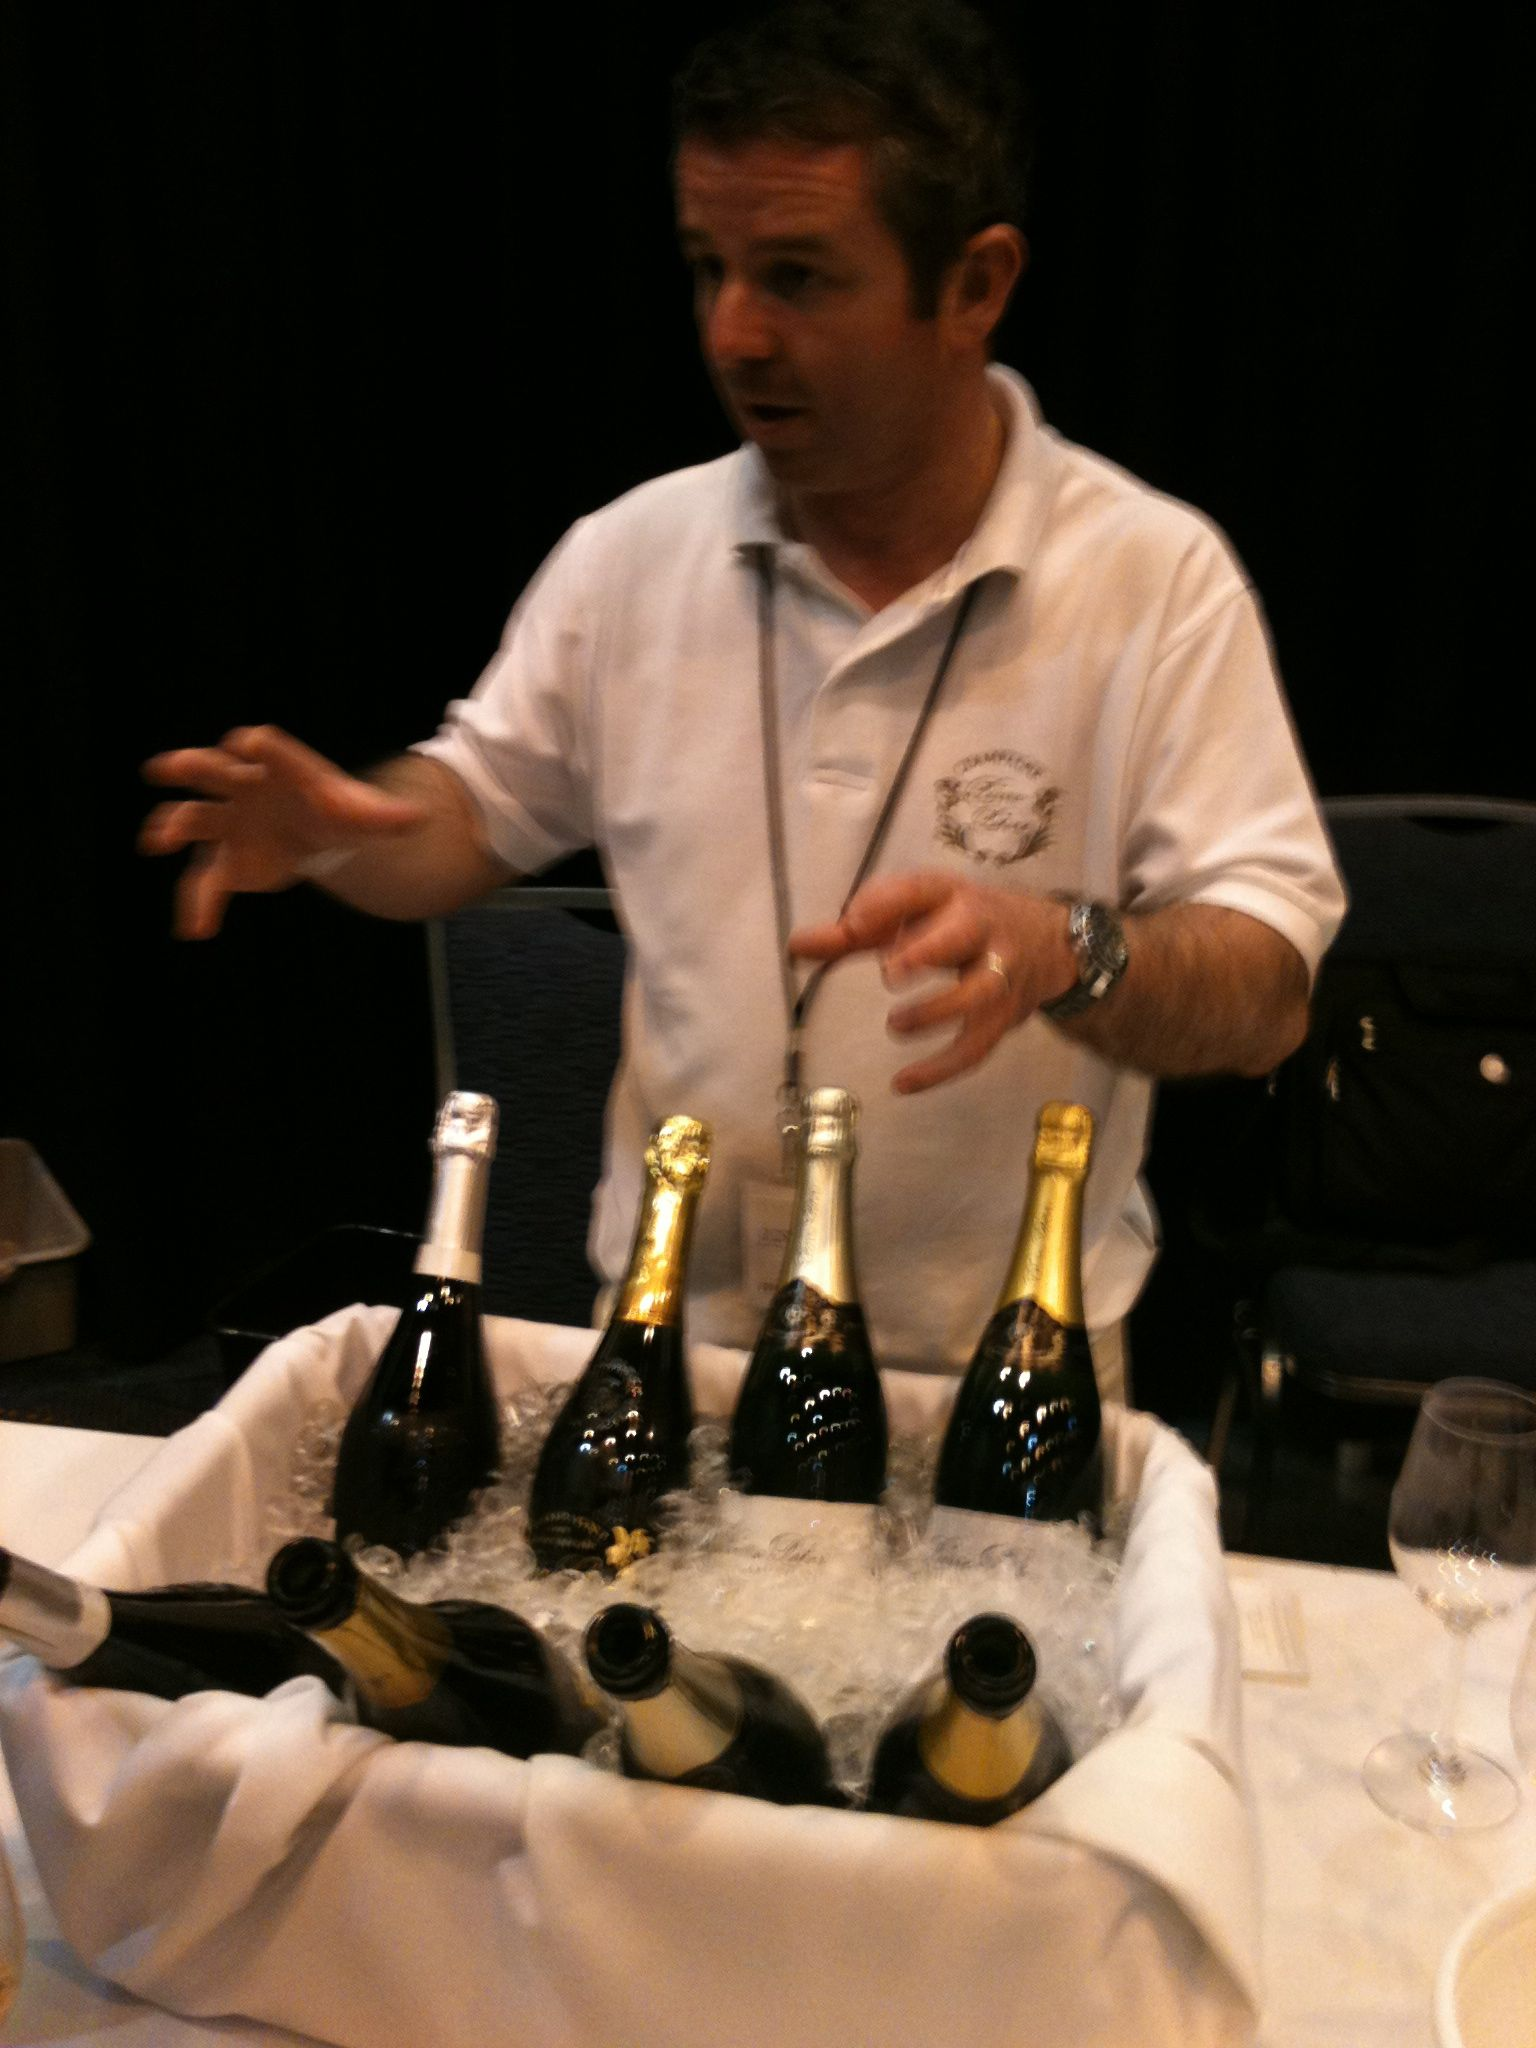 Pierre Peters Winemaker